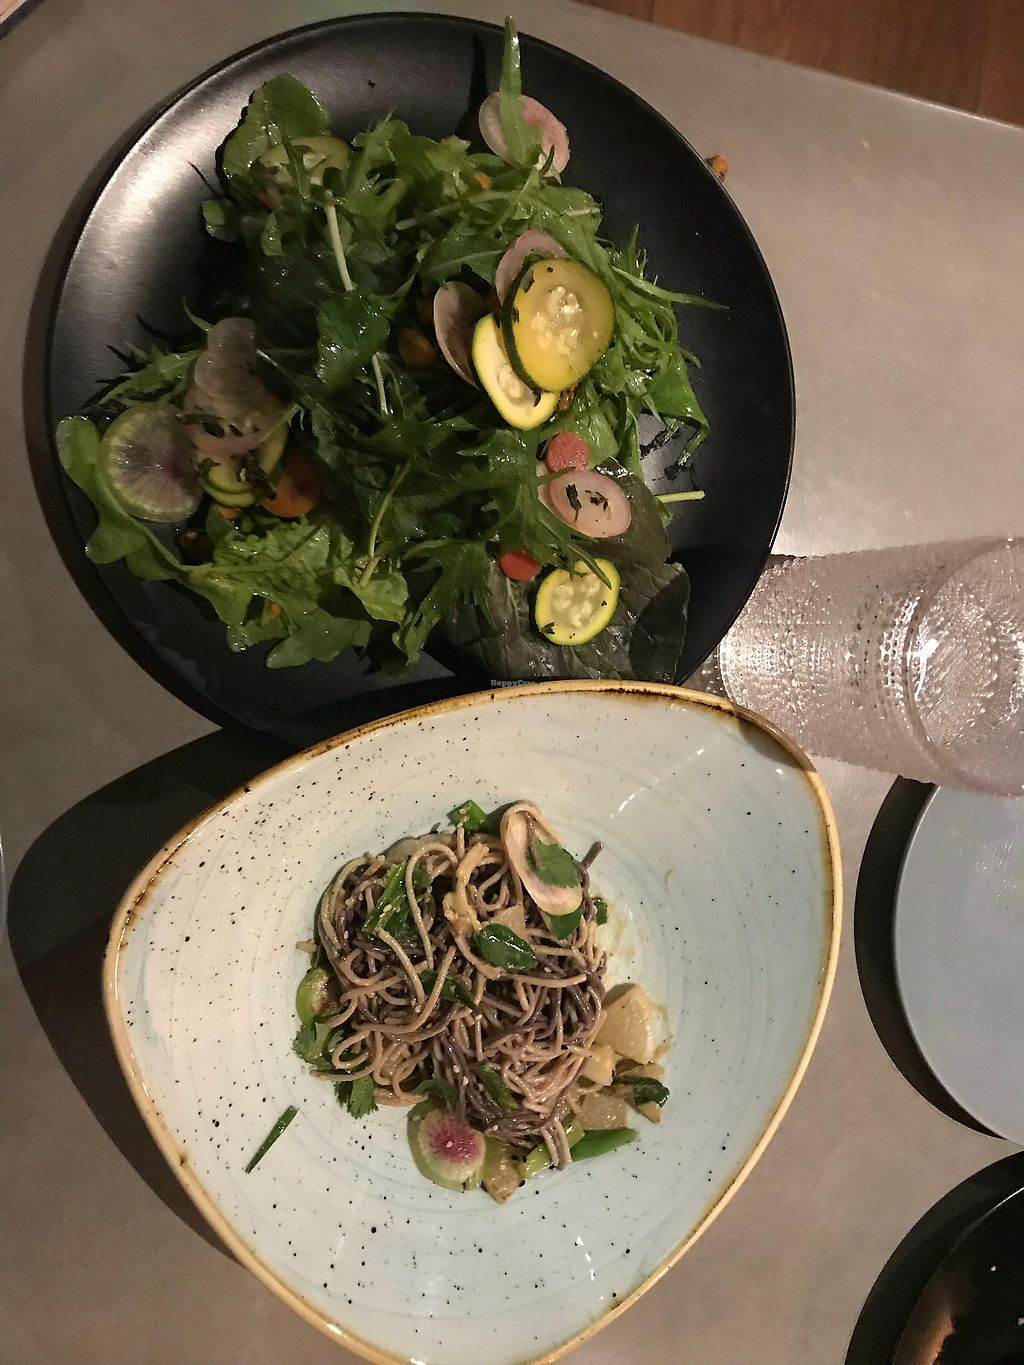 """Photo of Reading Room  by <a href=""""/members/profile/katiakanner"""">katiakanner</a> <br/>delicious salad (ask for no cheese) & amazing vegan noodle dish  <br/> March 16, 2018  - <a href='/contact/abuse/image/114711/371478'>Report</a>"""